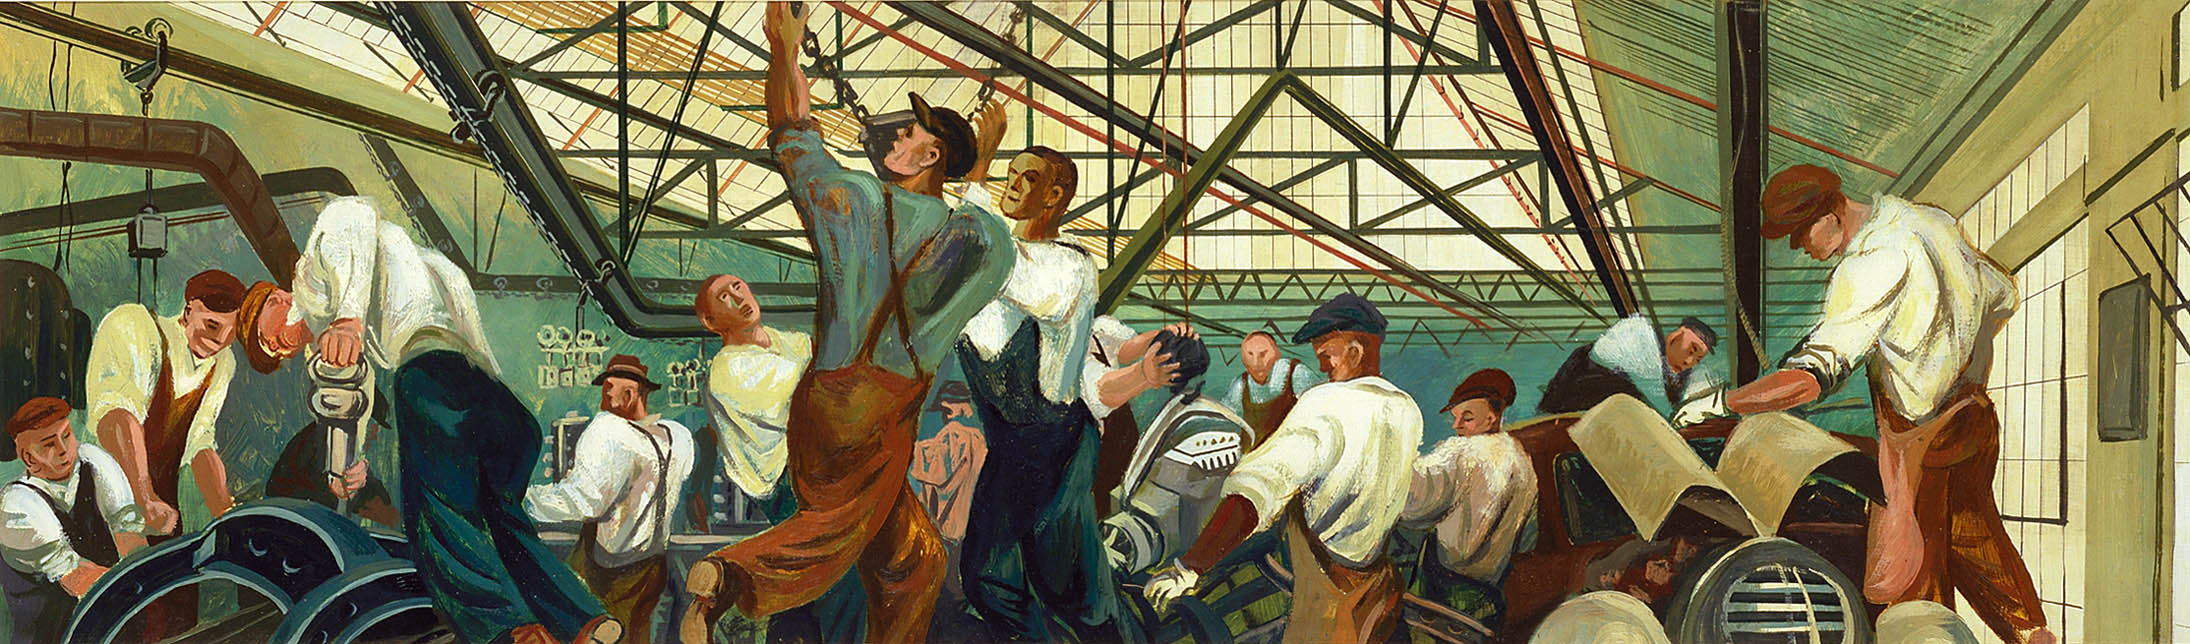 Automobile Industry (mural study, Detroit, Michigan Post Office)_1971.2_1a